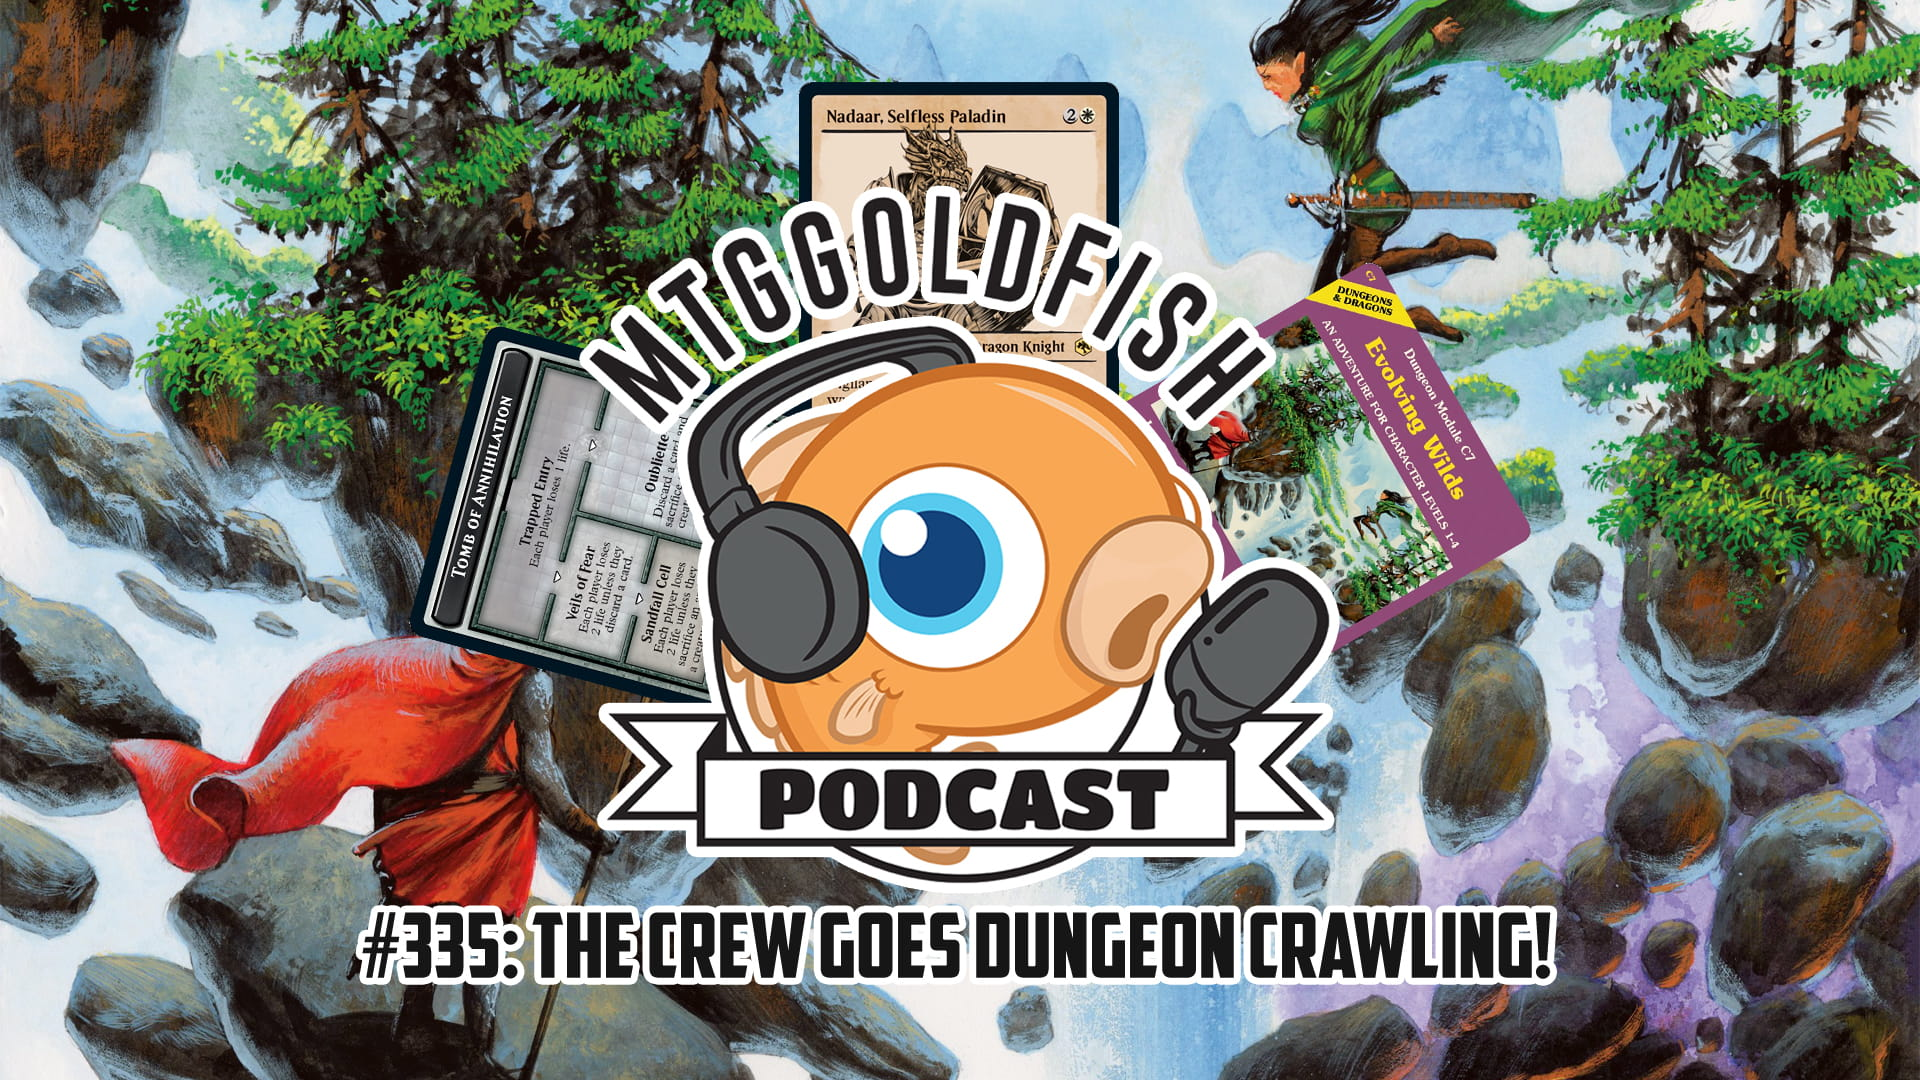 Image for Podcast 335: The Crew Goes Dungeon Crawling